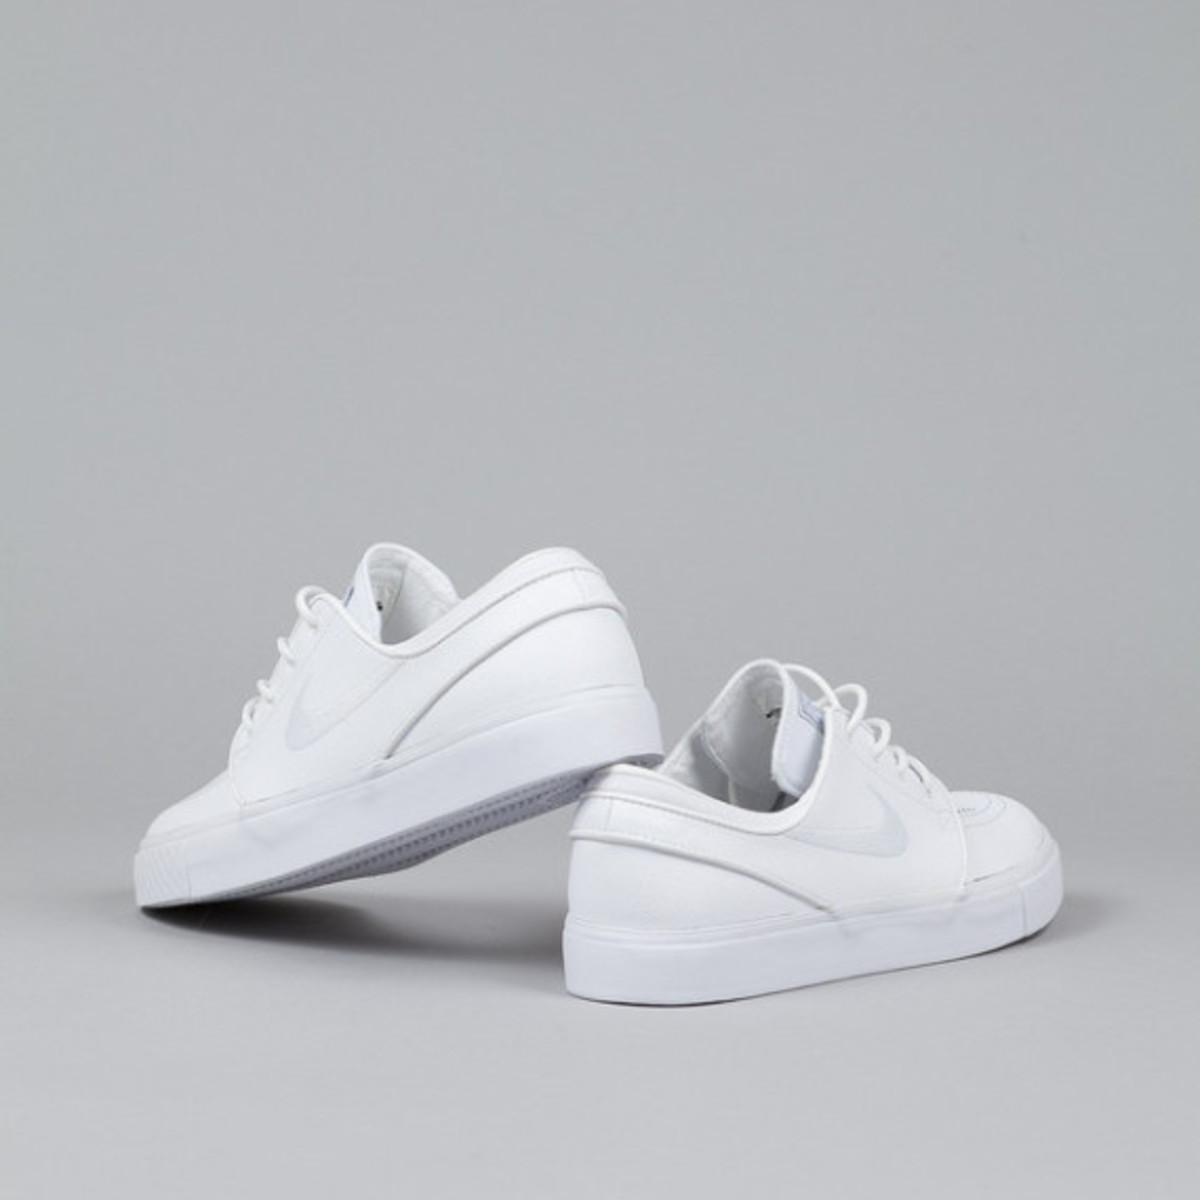 nike-sb-stefan-janoski-white-white-leather-02